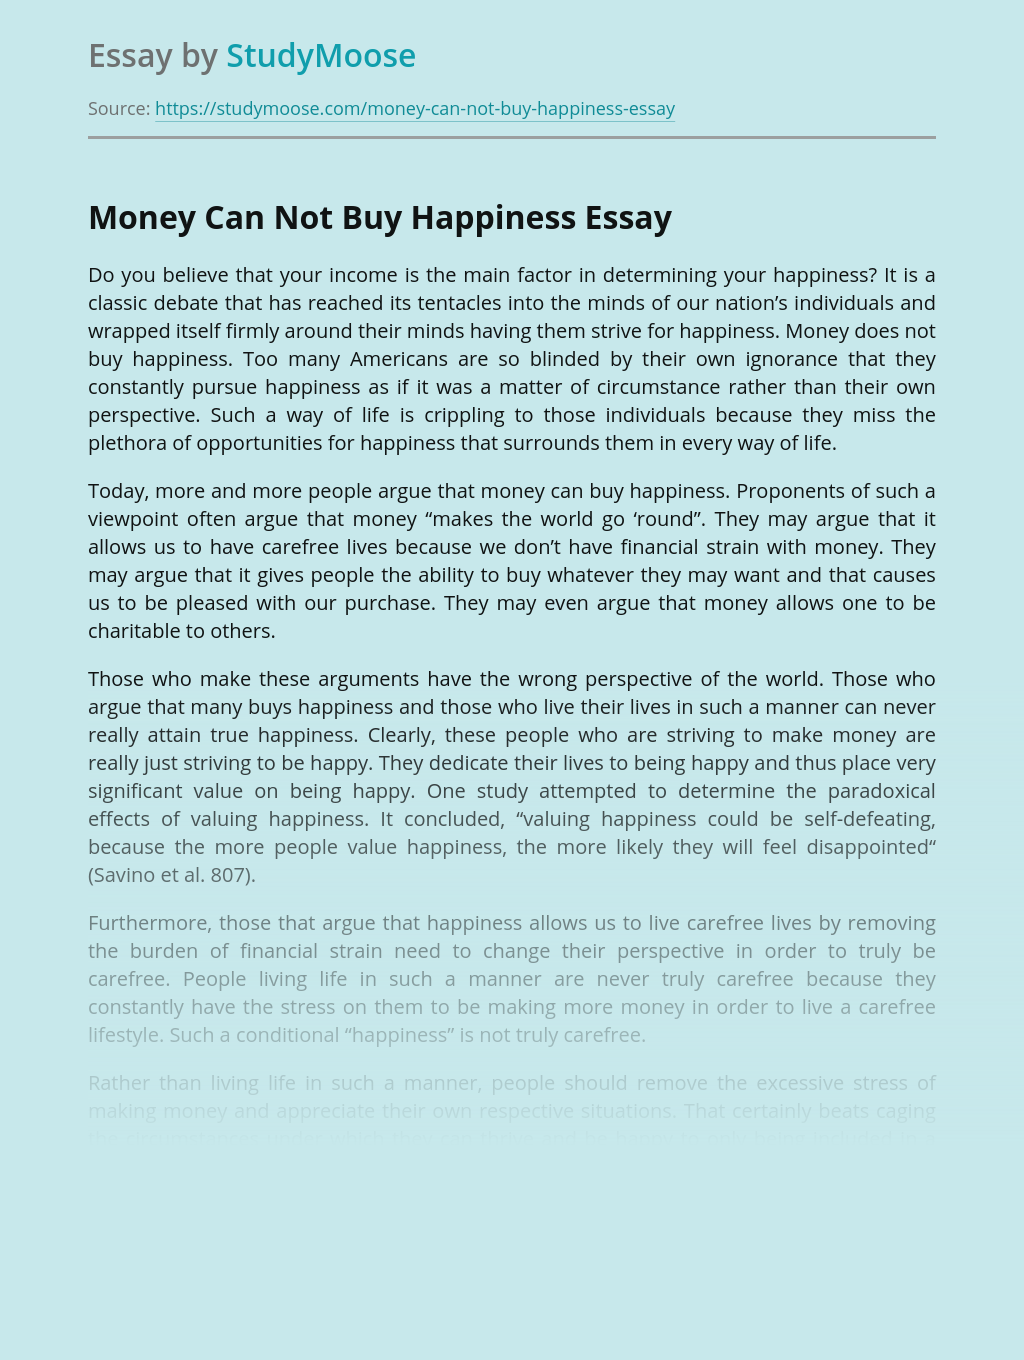 Money Can Not Buy Happiness